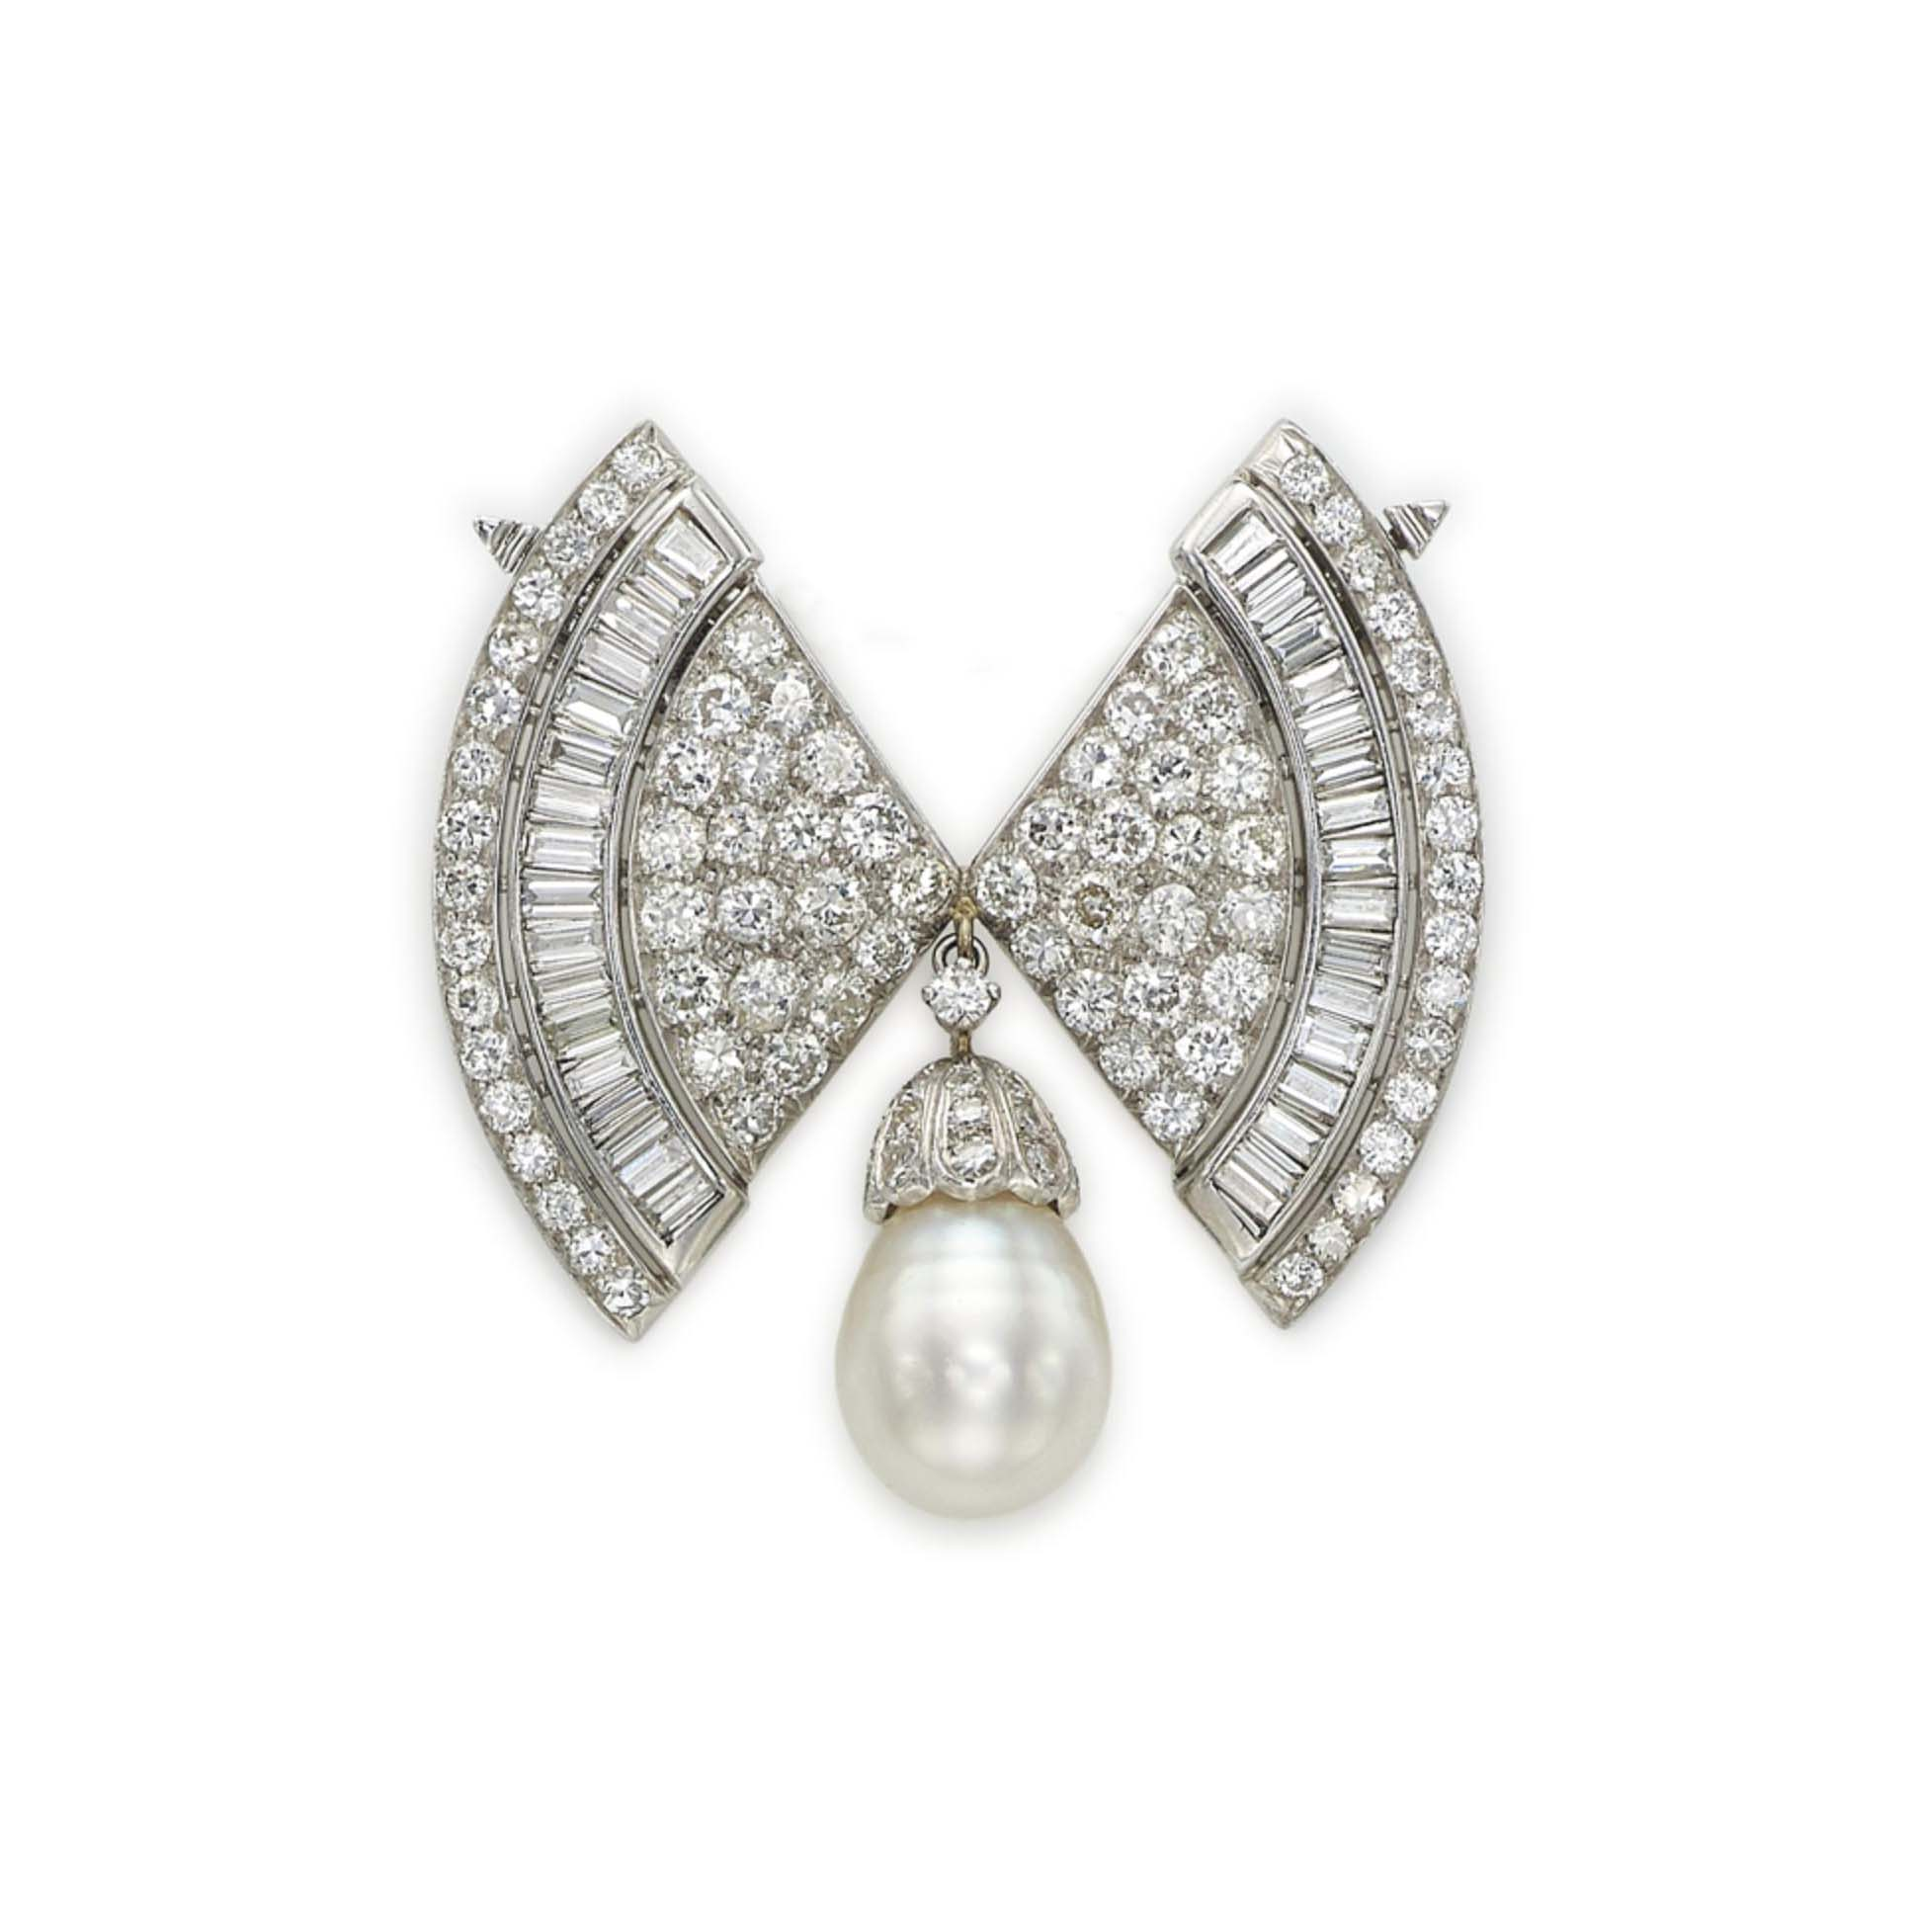 A DIAMOND AND CULTURED PEARL BROOCH, BY VOURAKIS